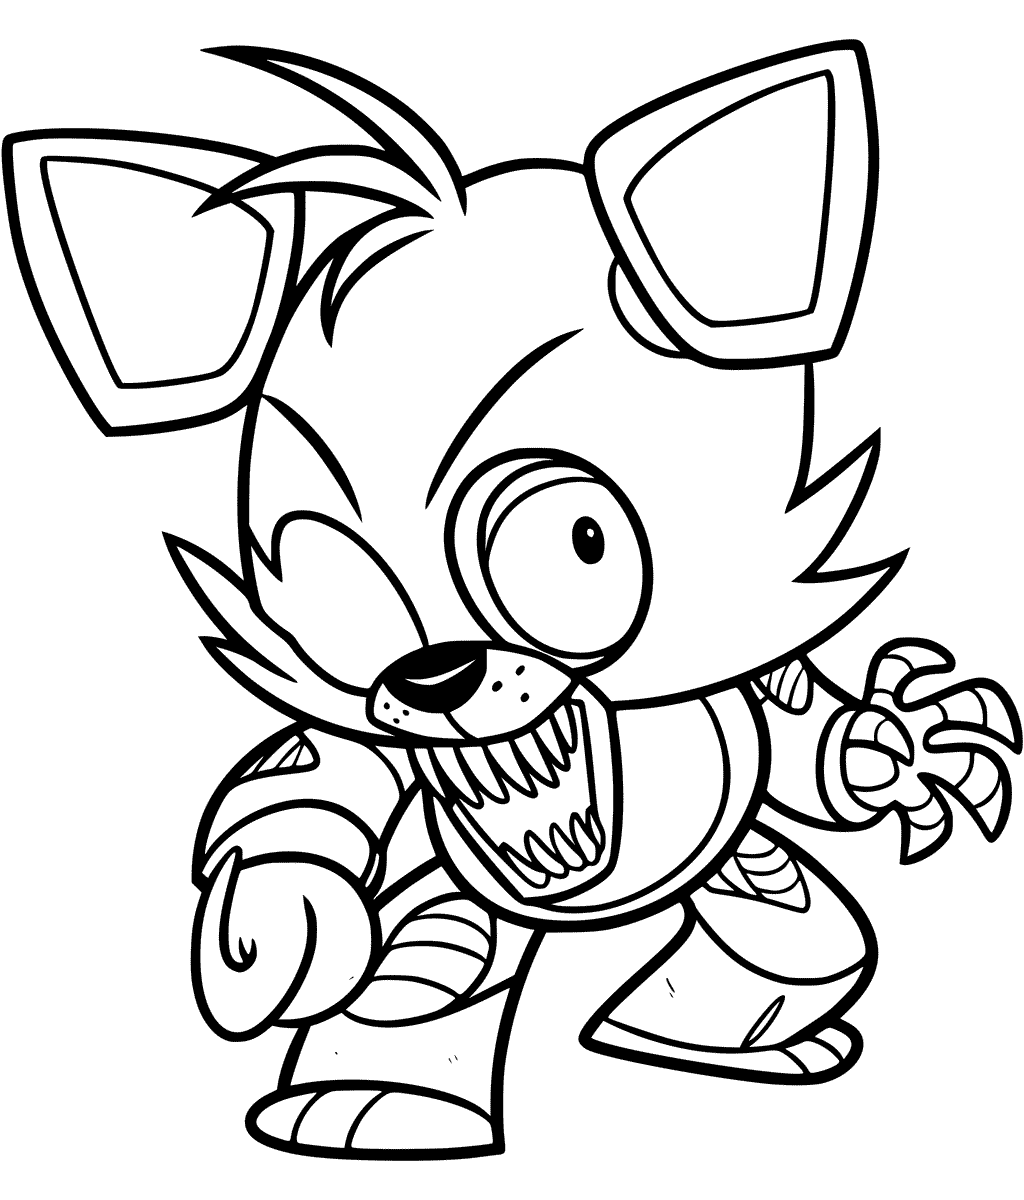 Foxy Coloring Page At Getcolorings